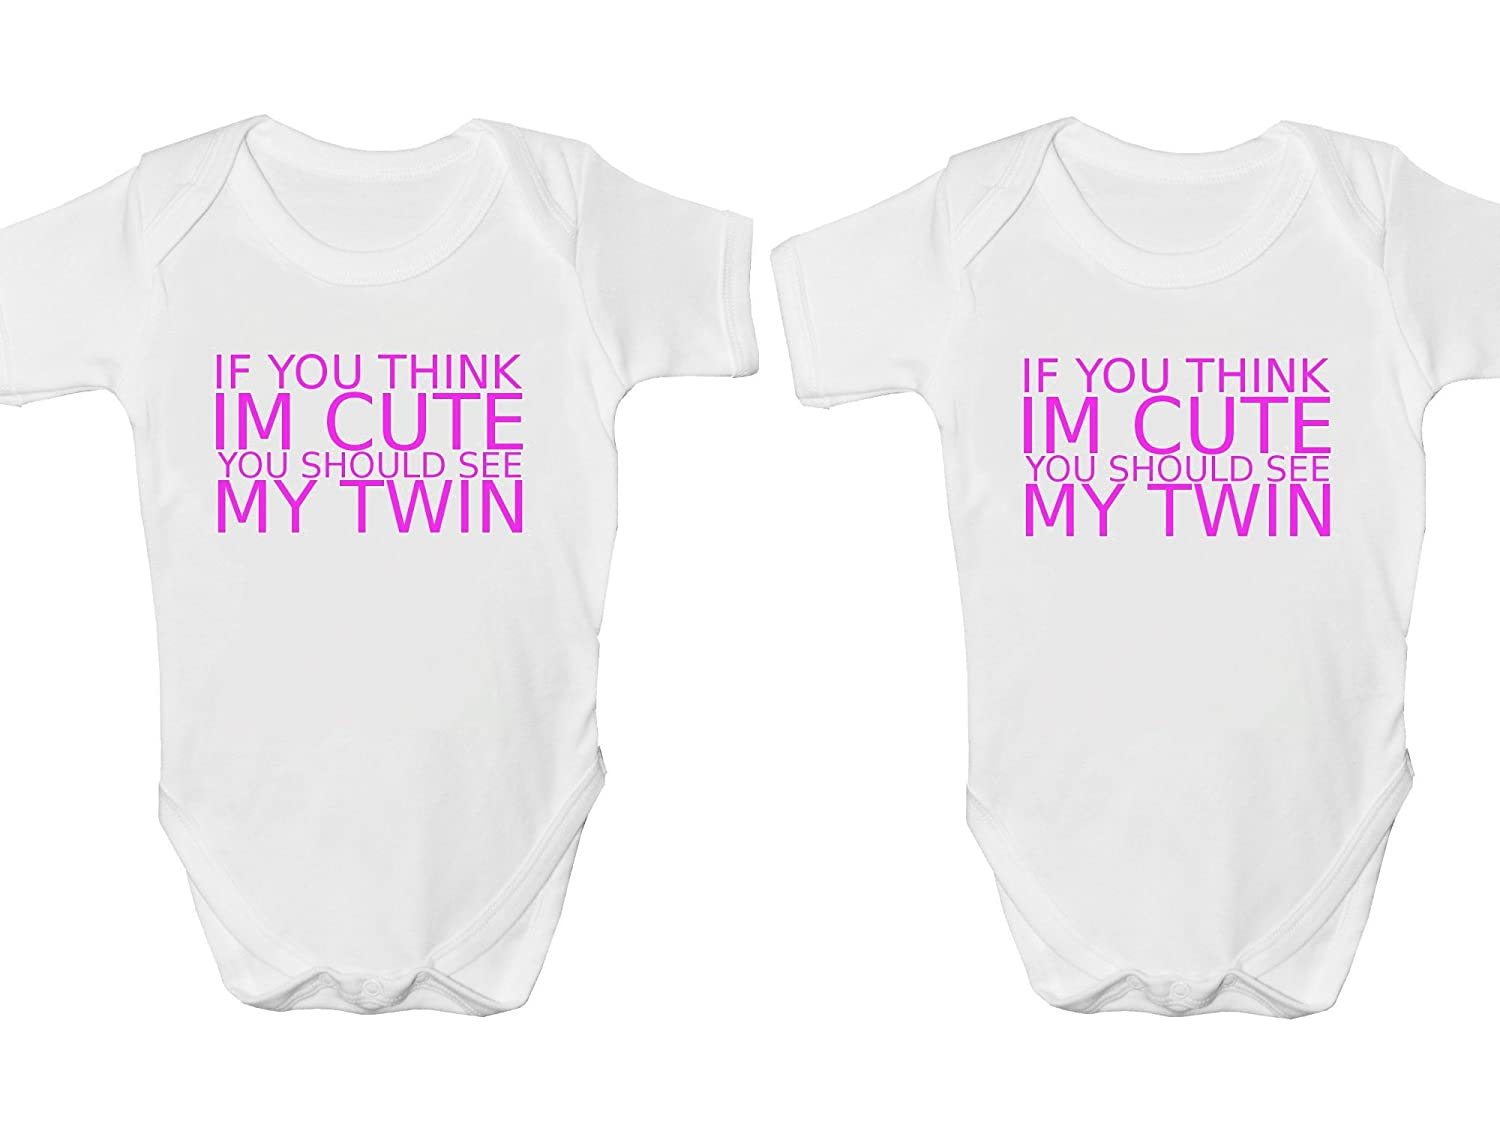 If You Think Im Cute You Should See My Twin Body Suit Set Baby Grow Vest - 9 – 12 Months 2Personal